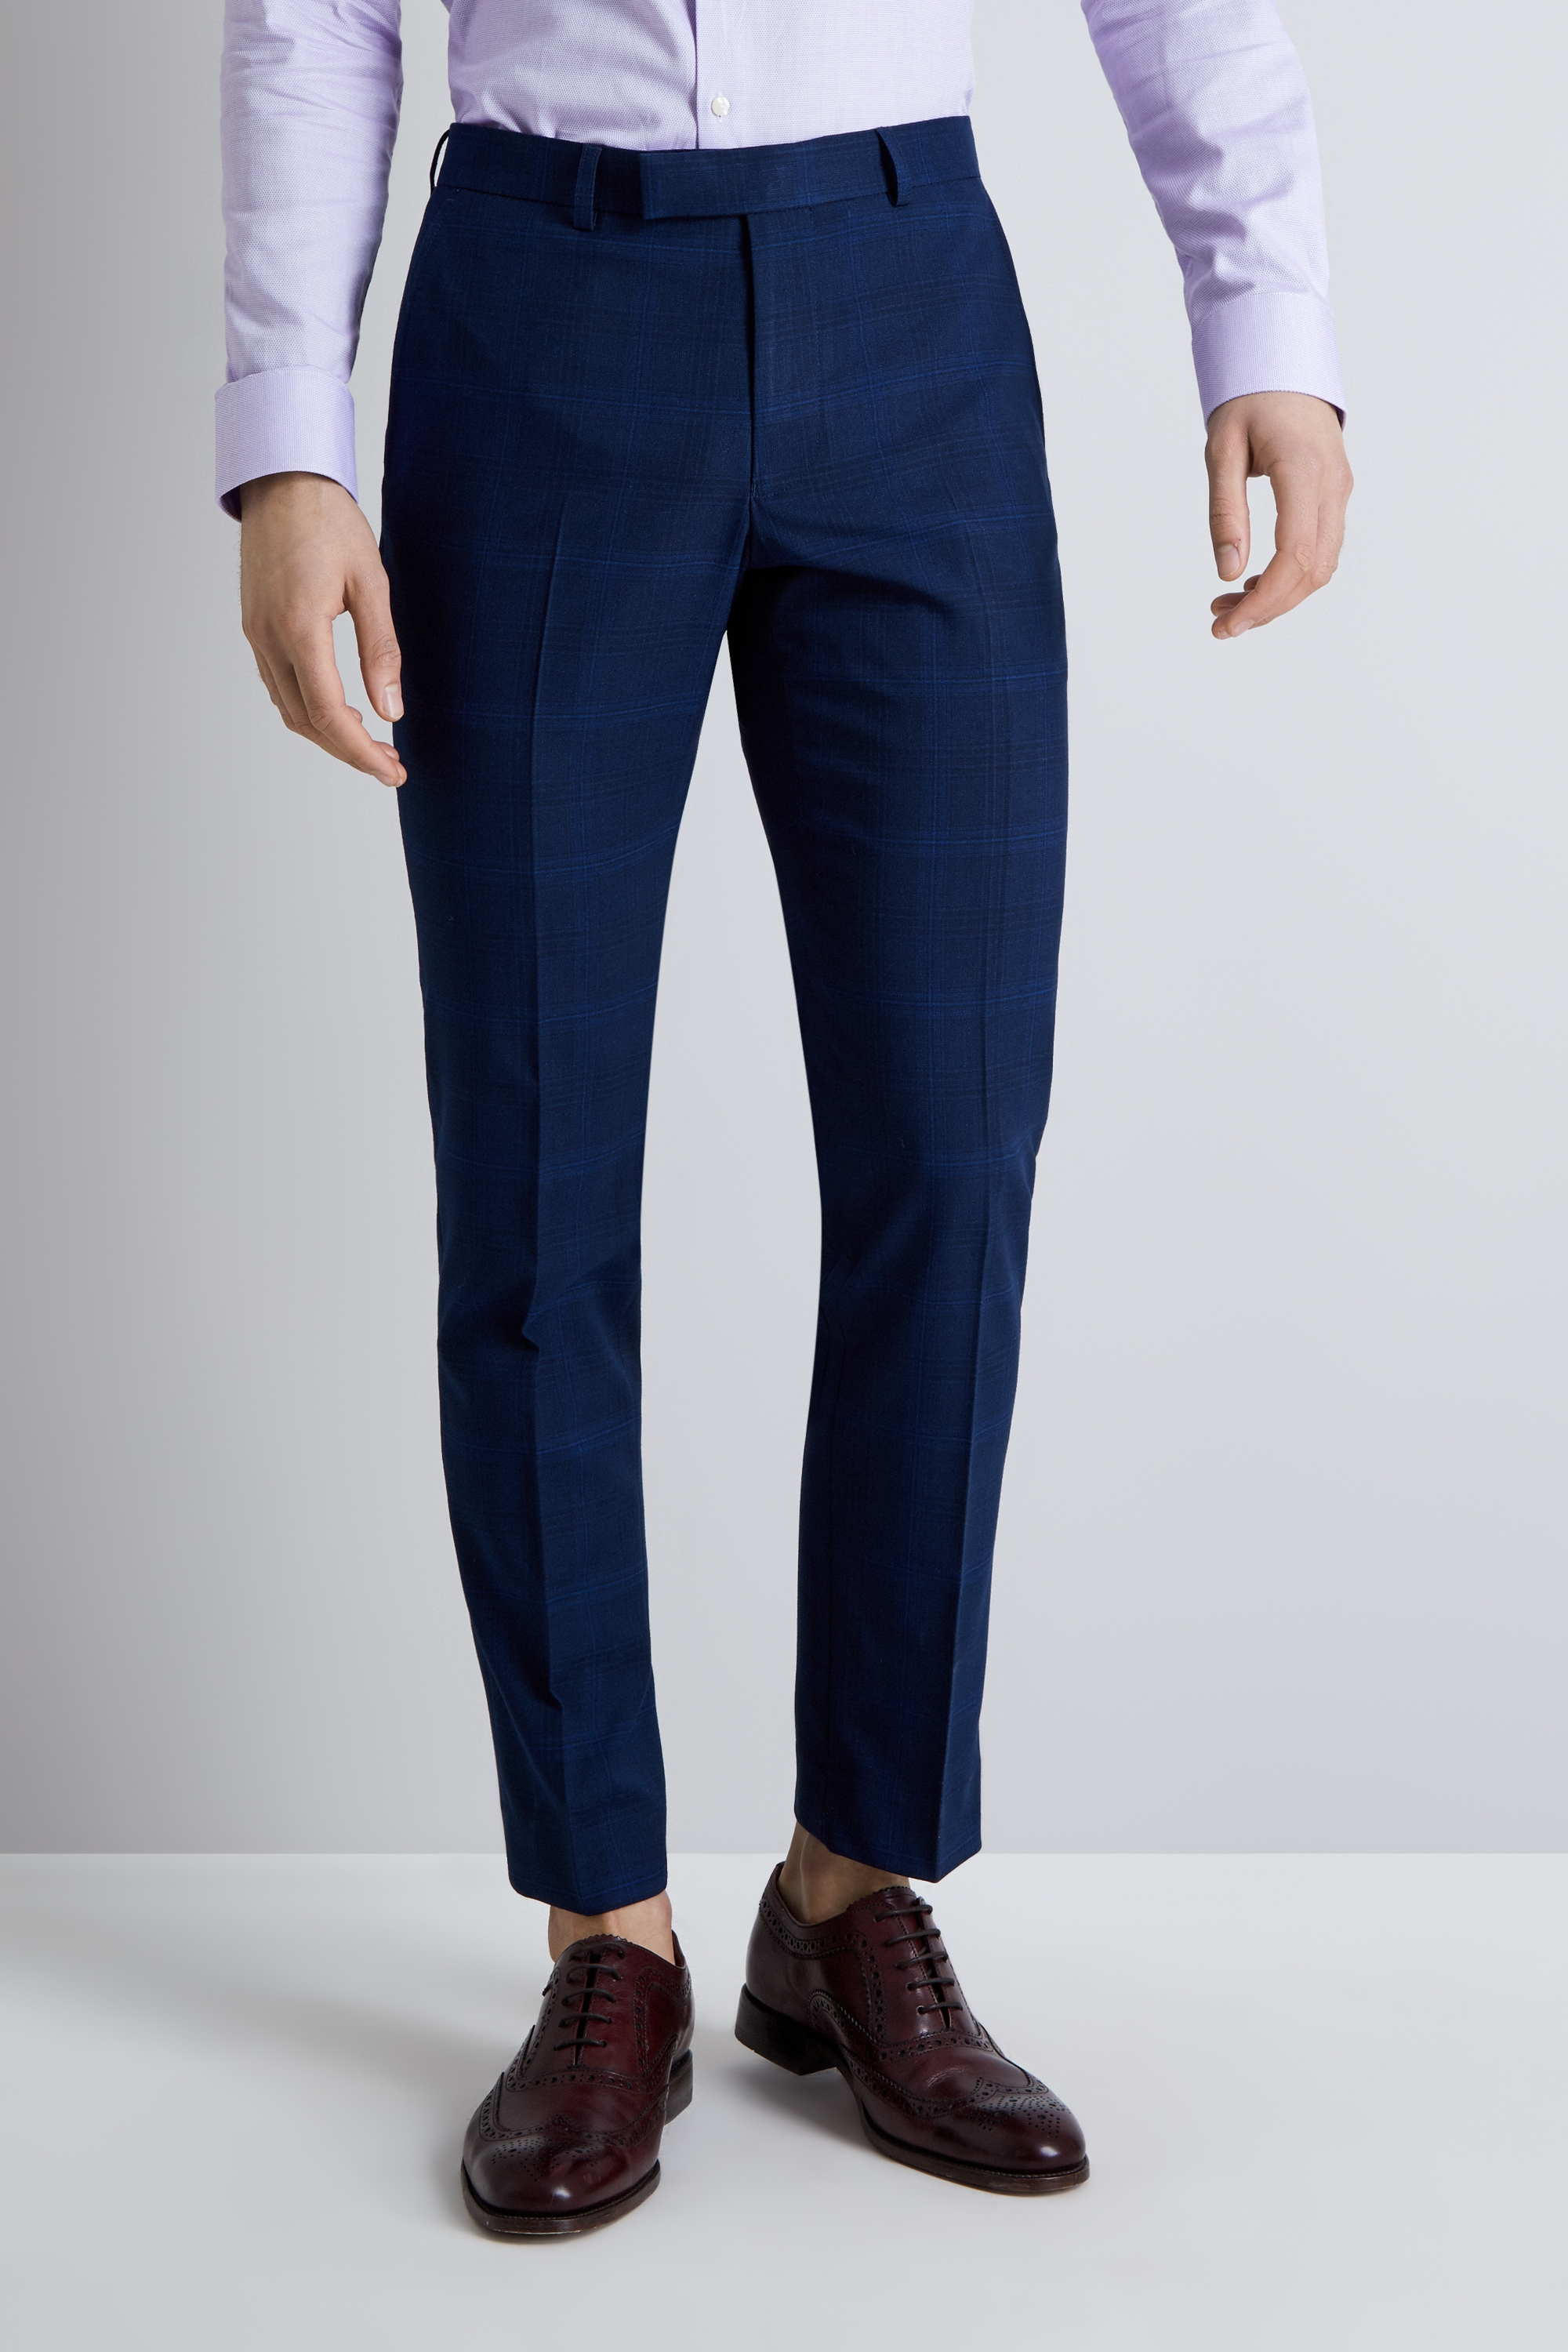 9c42faec813 Moss London Men Blue Cropped Check Trousers Skinny Fit Ankle Length Casual  Pants